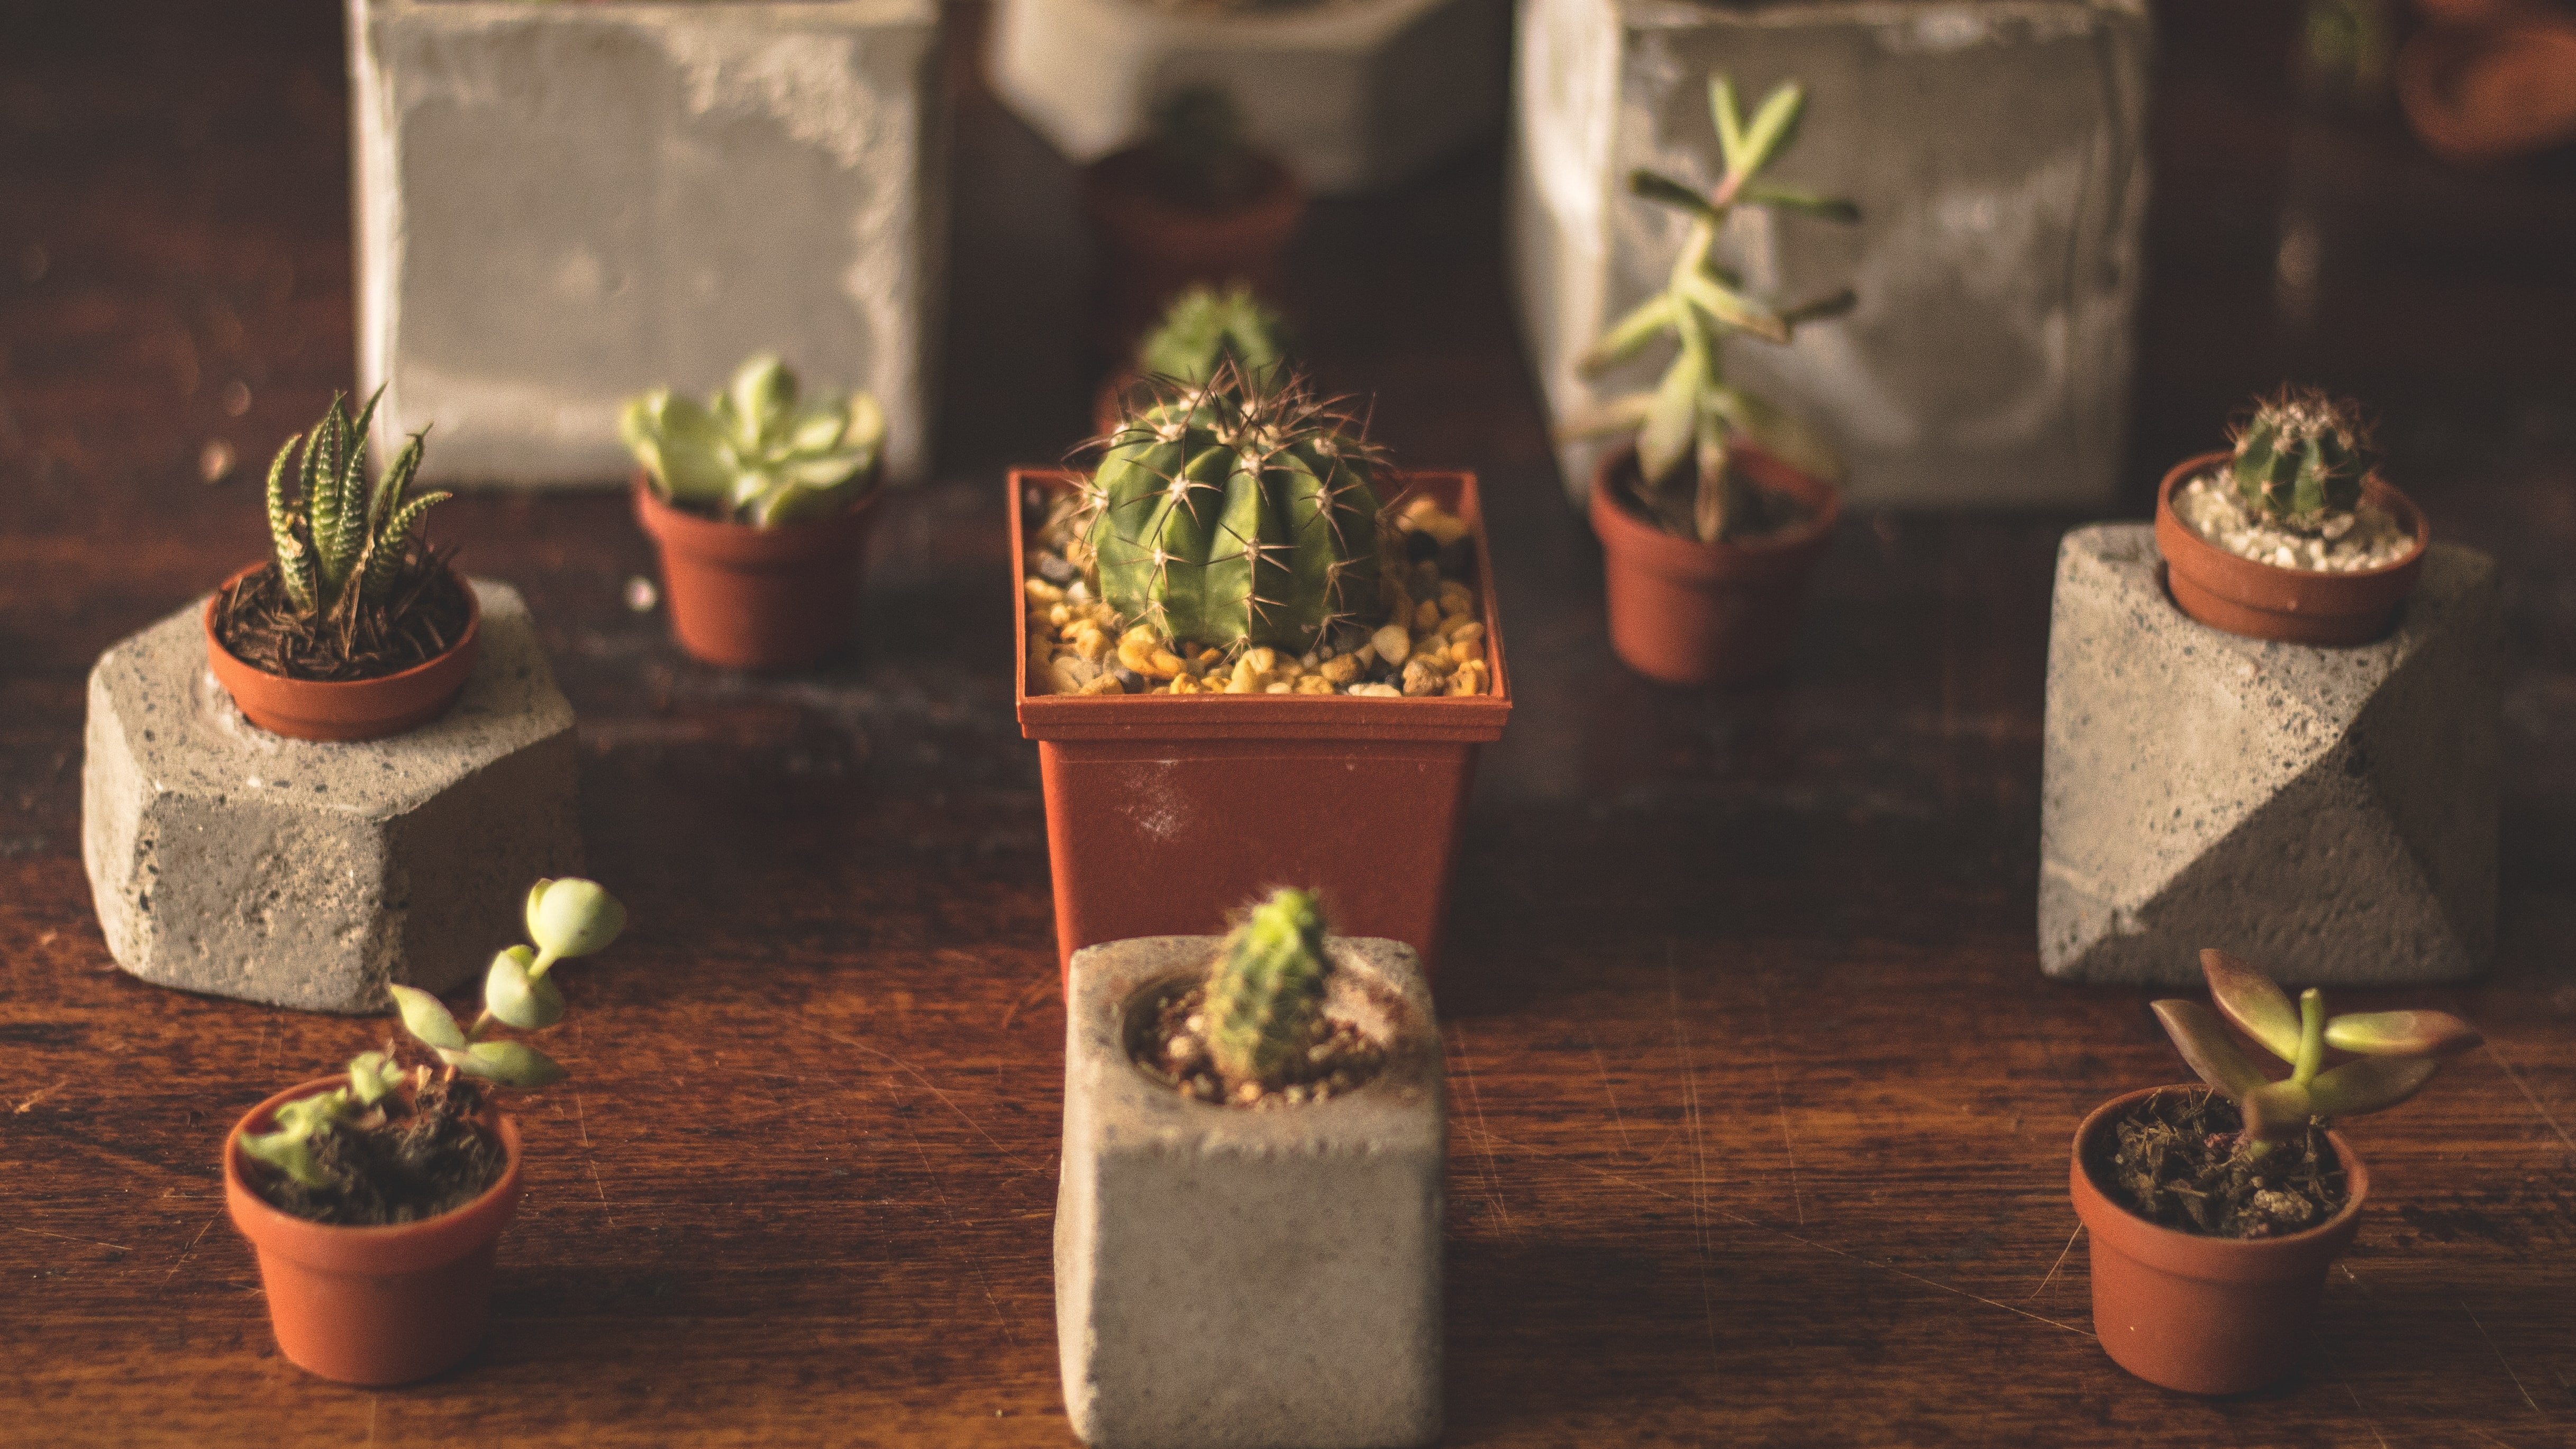 Green cactus plant in rock vase on a wooden table in Mexico